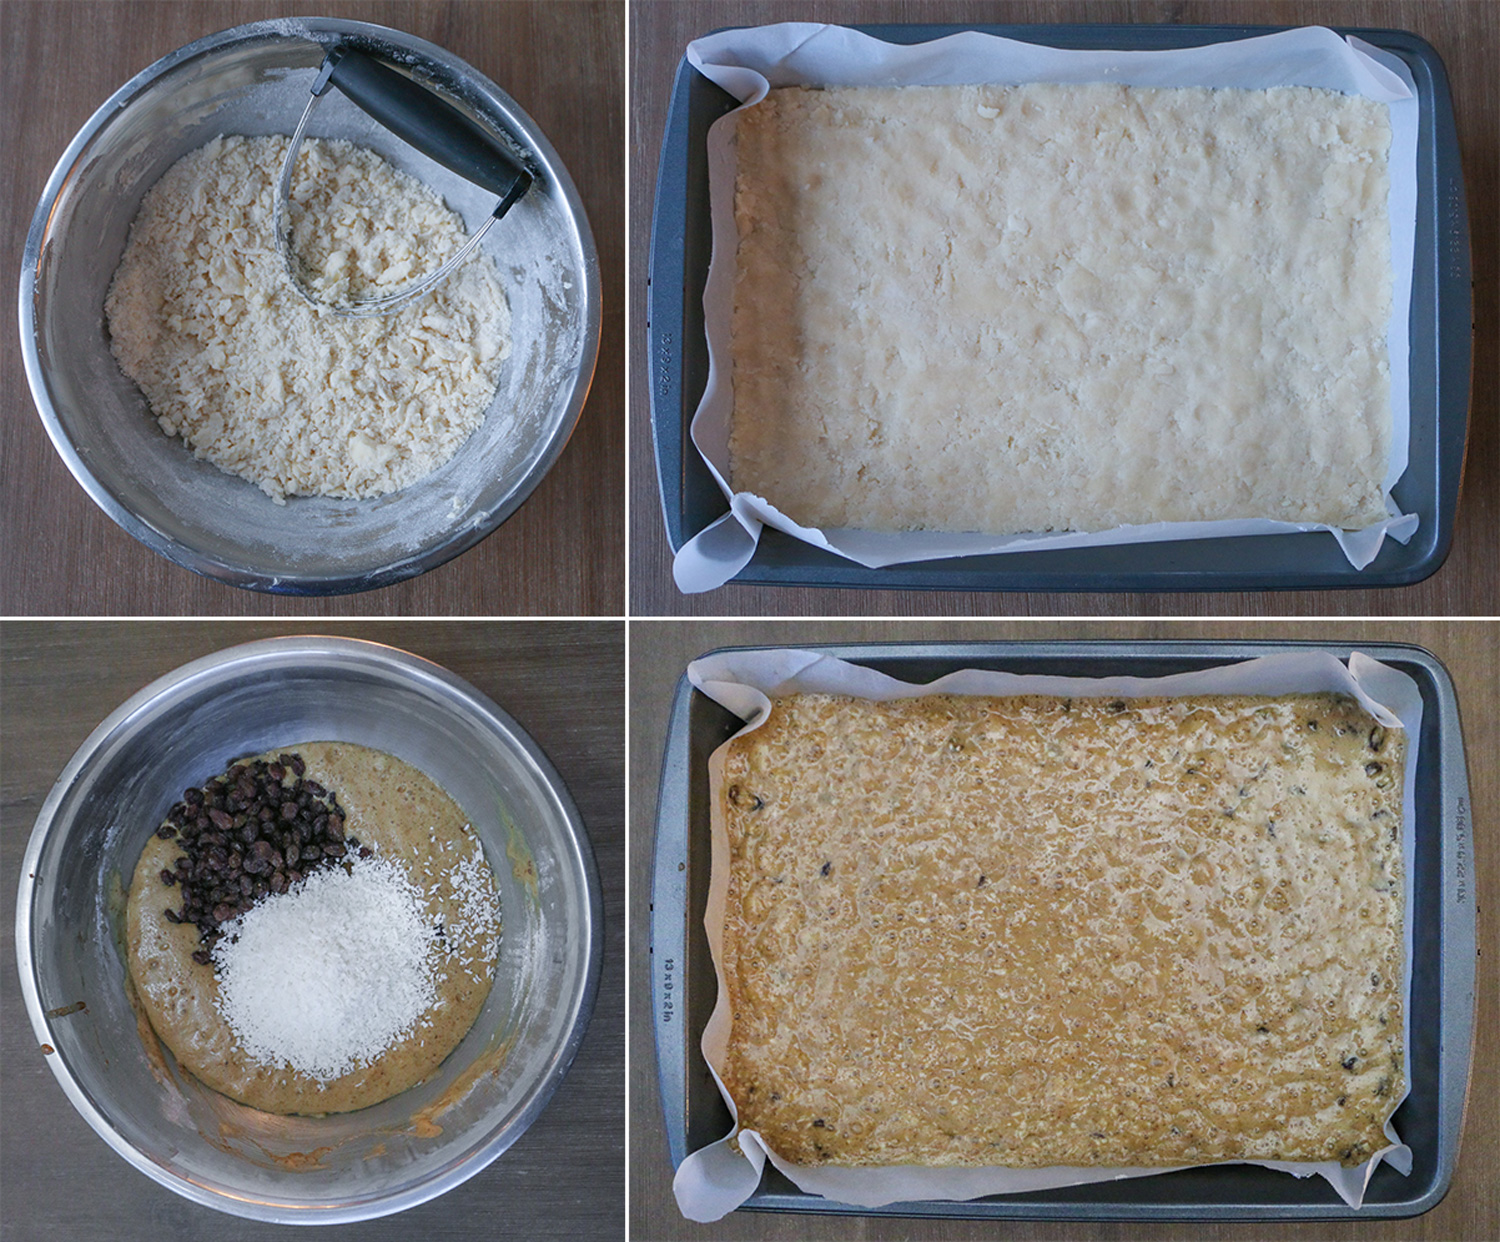 Steps to make butter tart squares